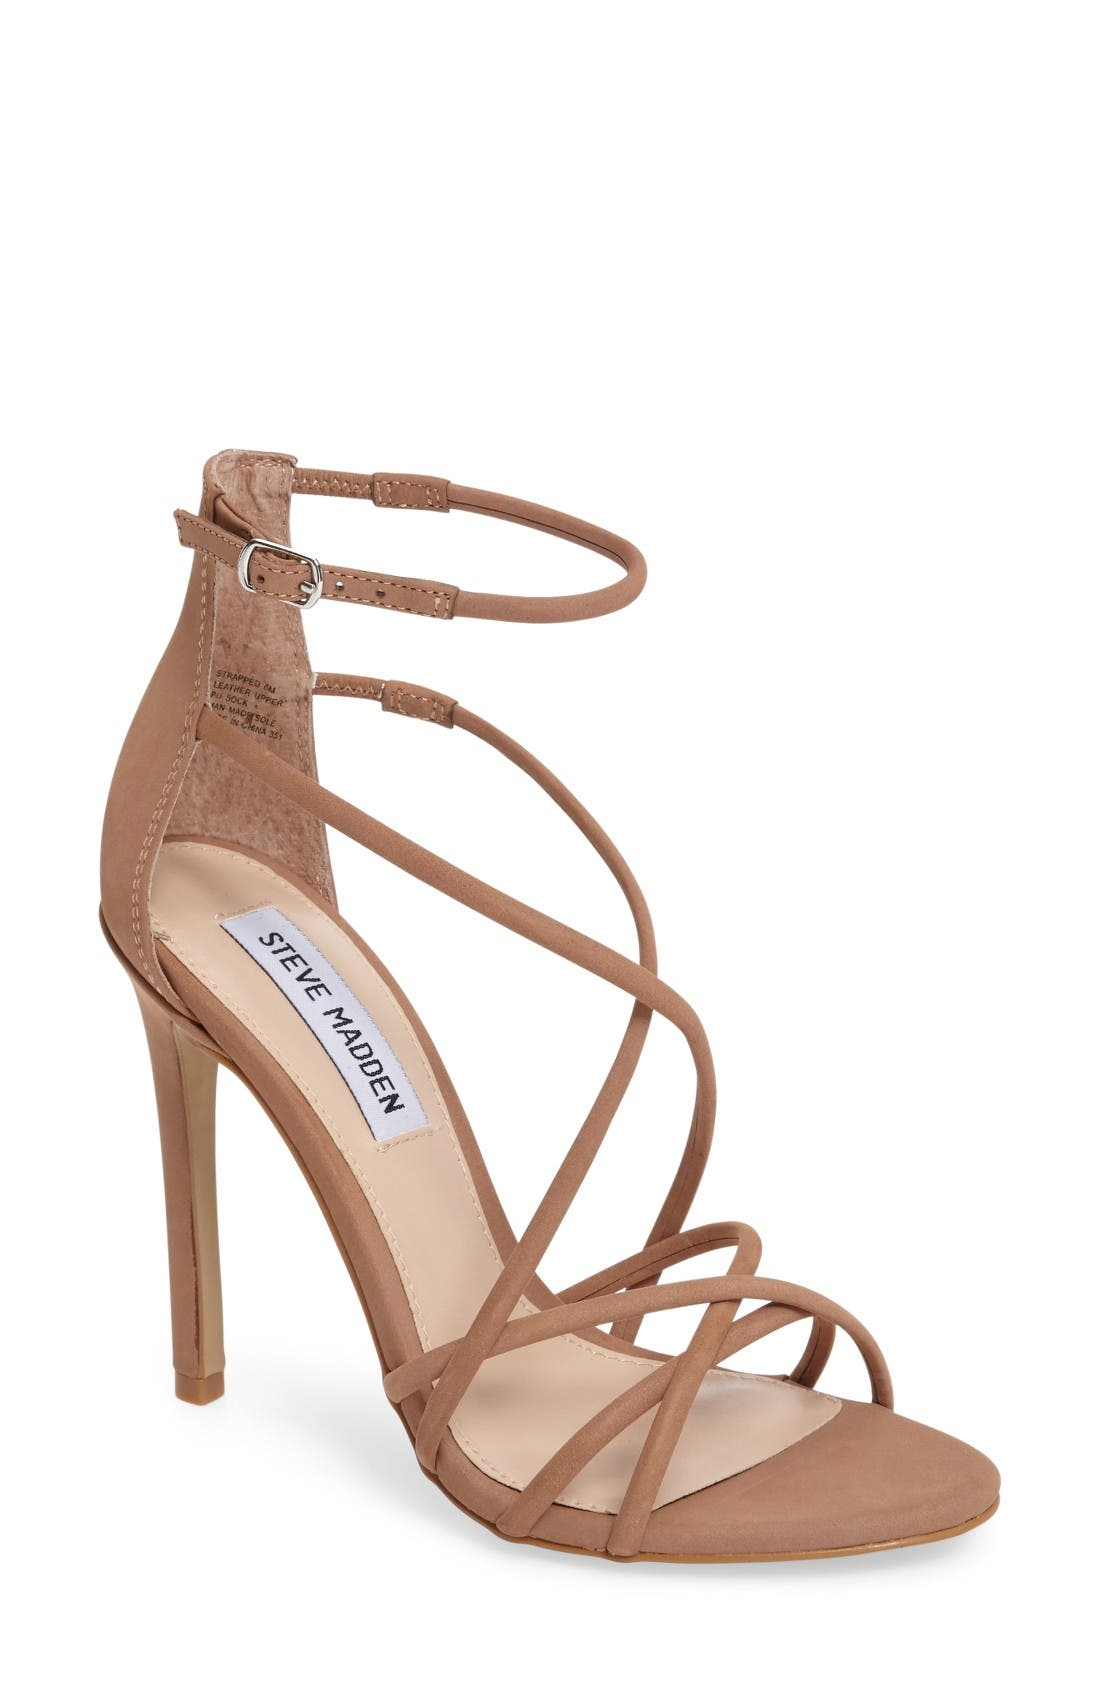 Alternate Image 1 Selected - Steve Madden Strappy Sandal (Women)